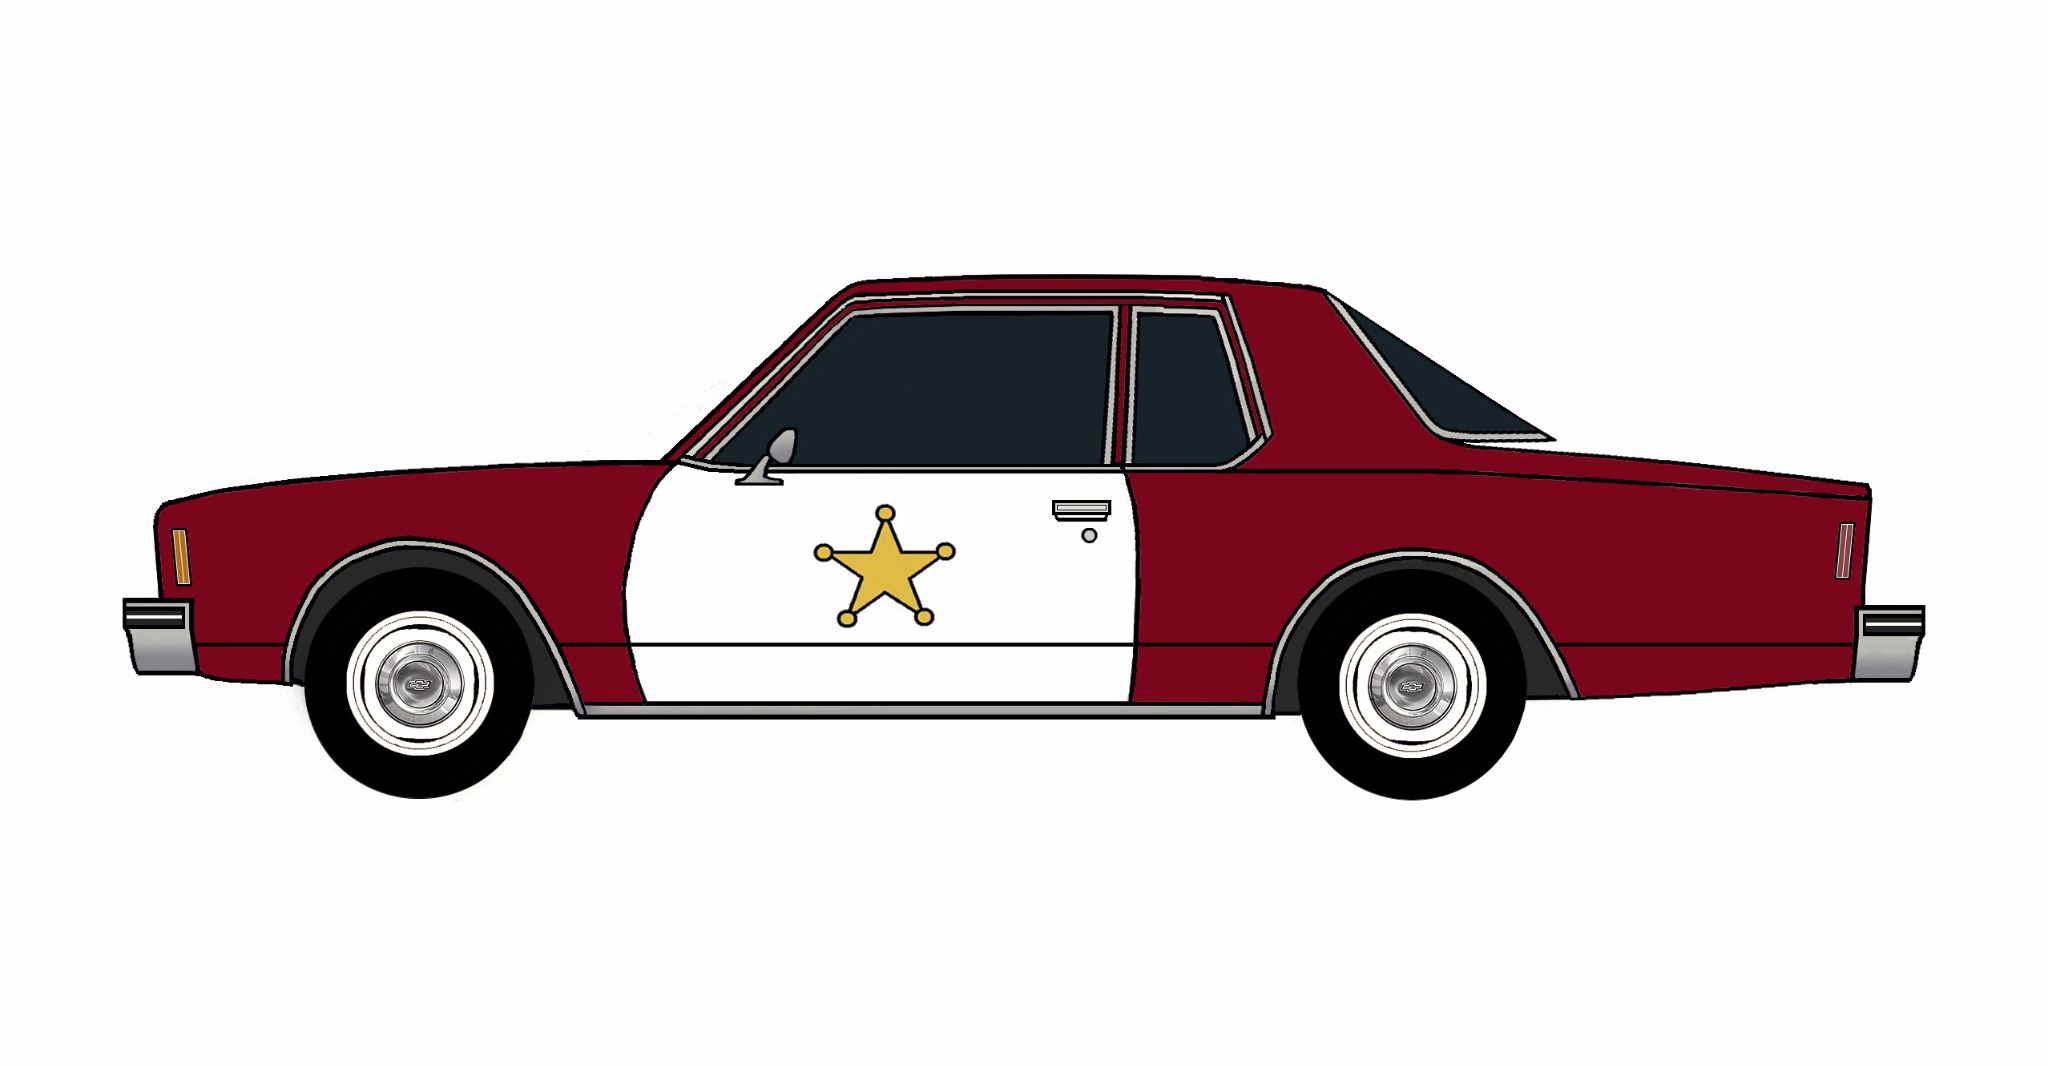 1978 Chevy Impala Police Coupe DARK BURGUNDY